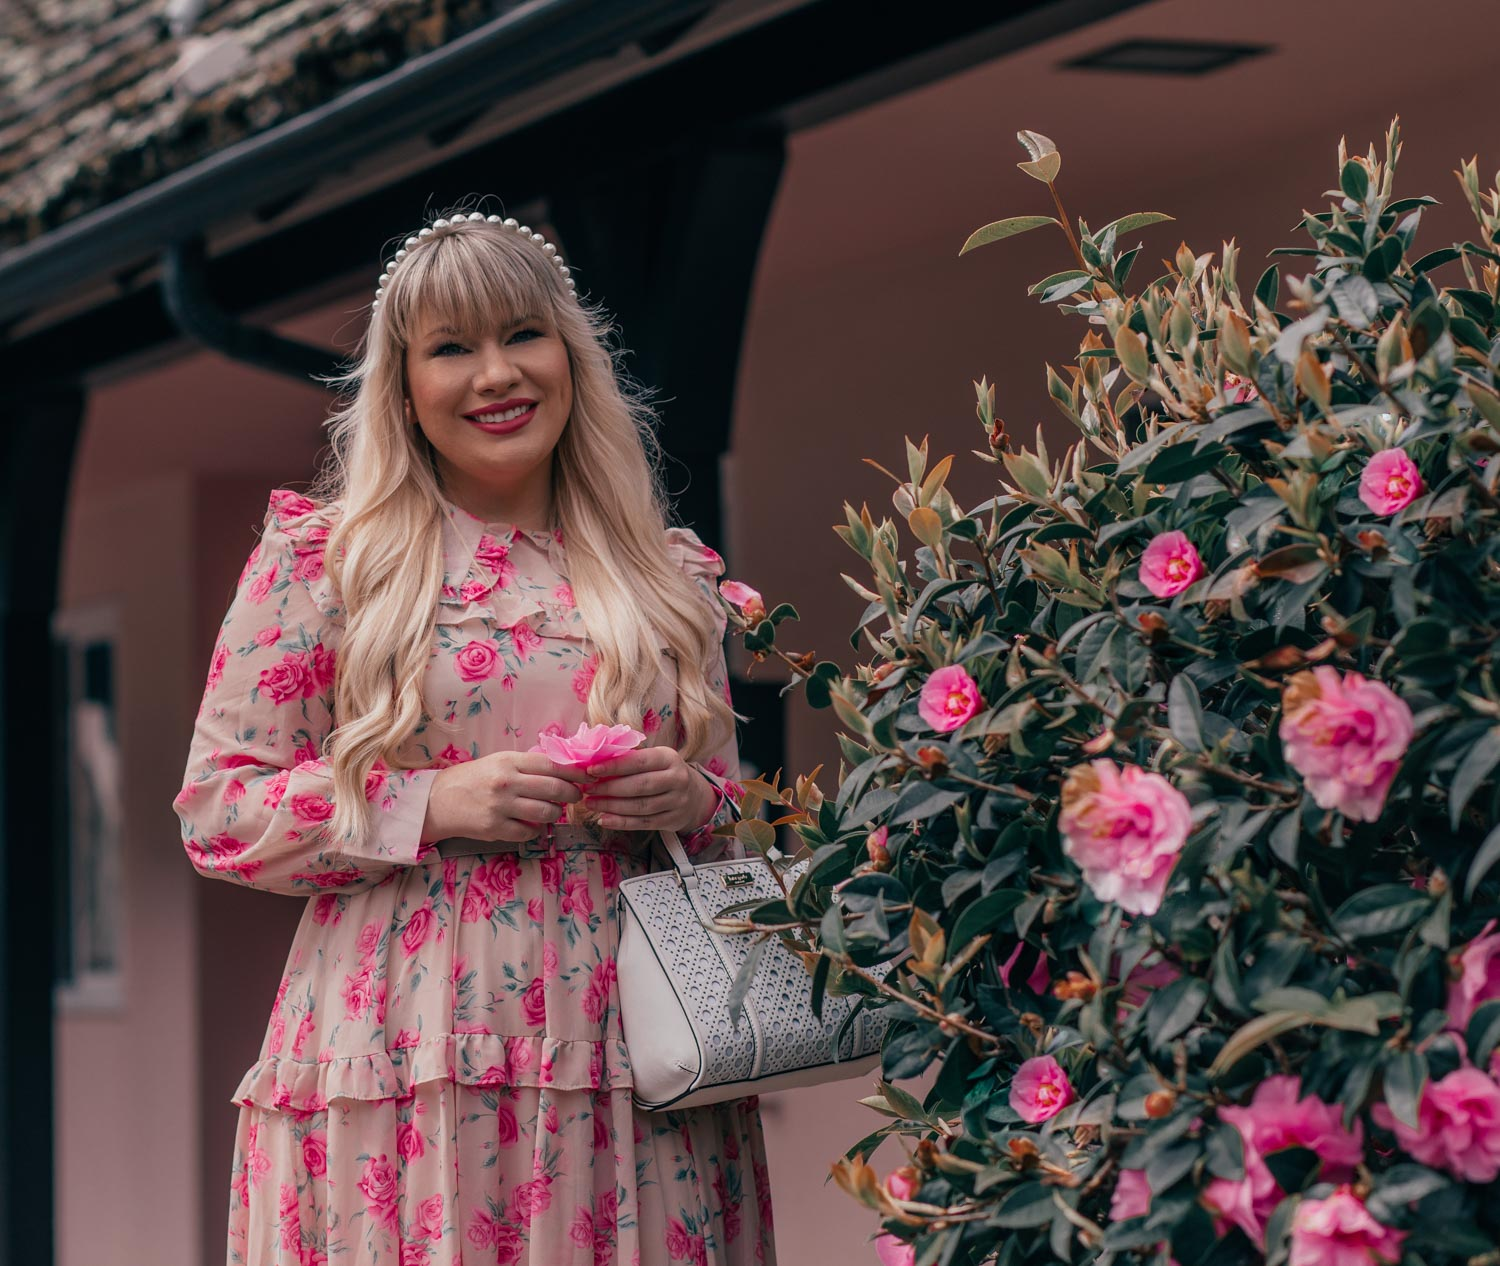 Feminine Fashion Blogger Elizabeth Hugen of Lizzie in Lace shares how to wear the statement collar trend along with a summer outfit including a pink floral chicwish dress and a white kate spade handbag